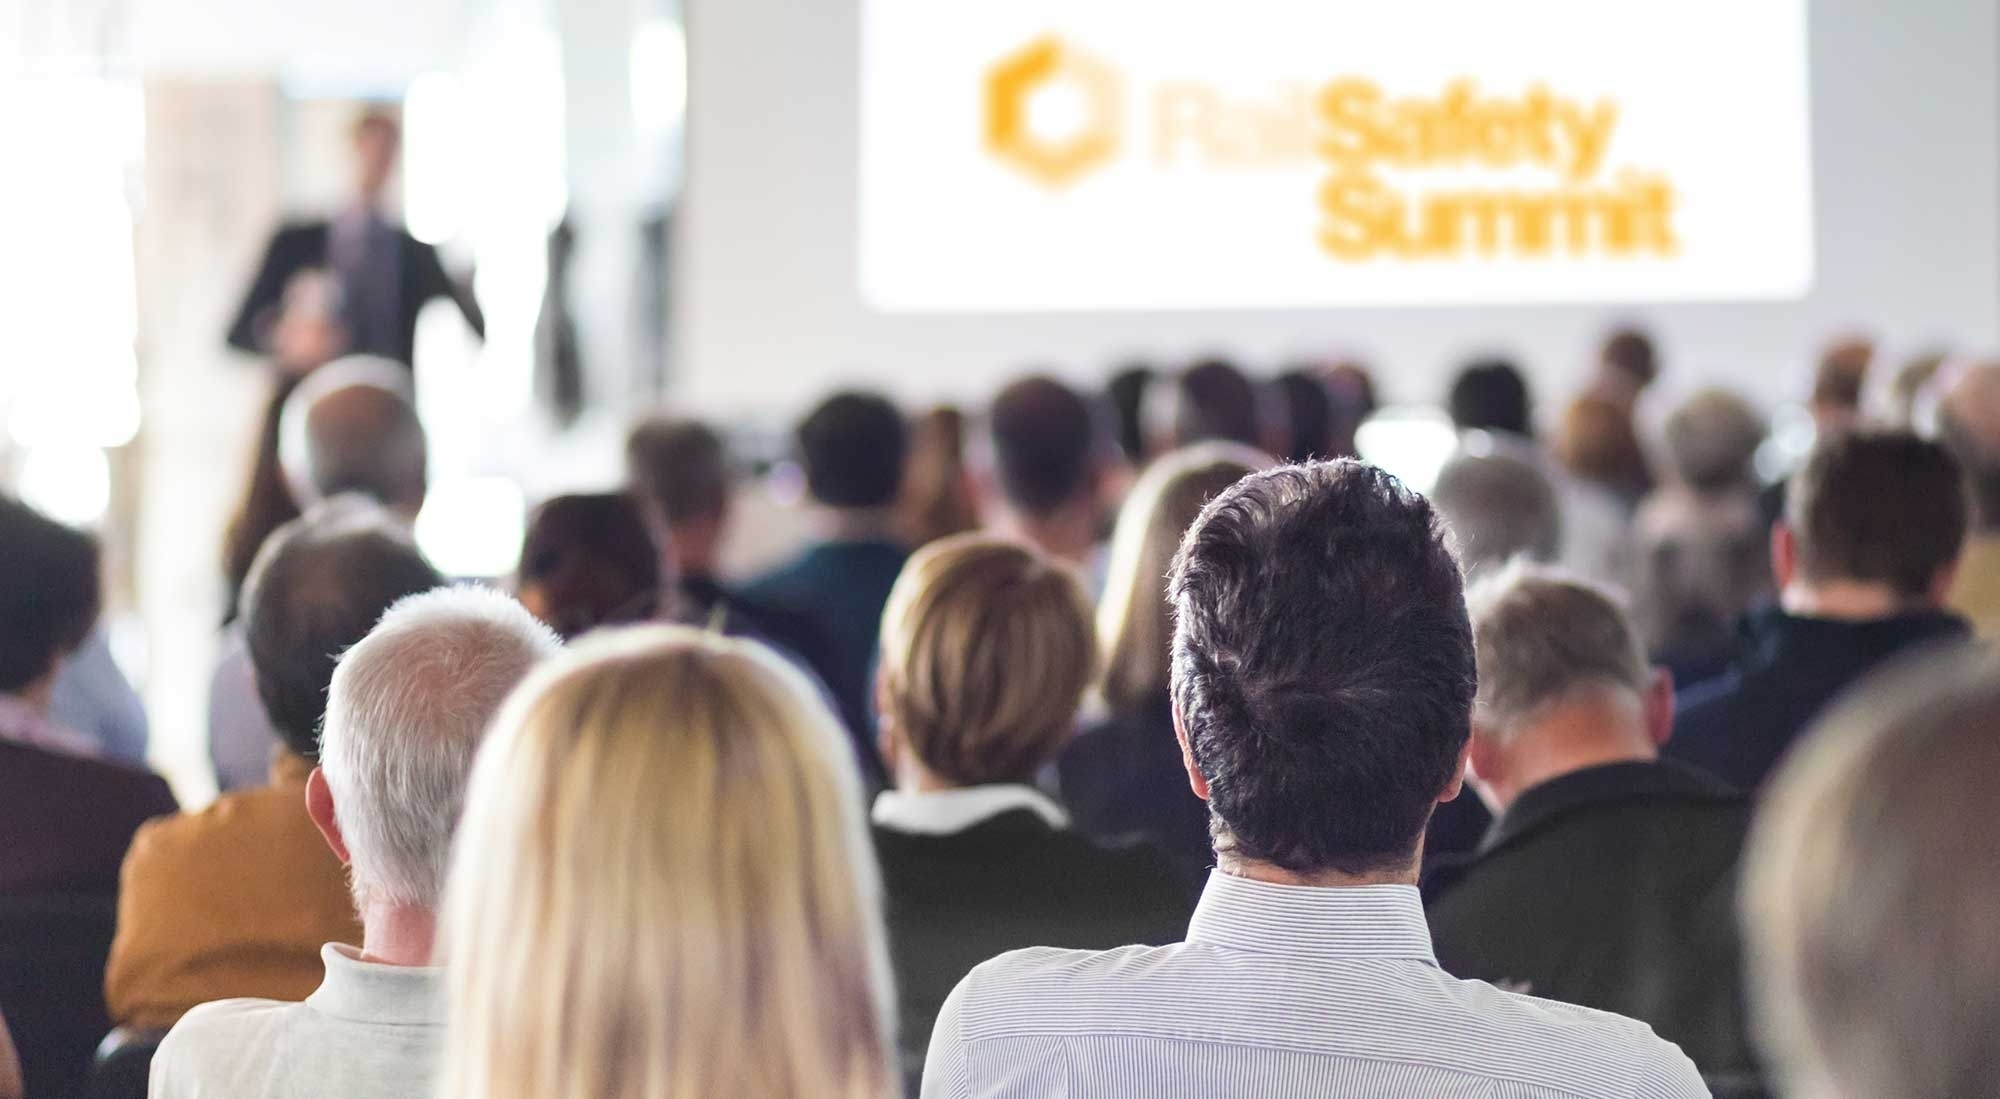 Rail Safety Summit 2018